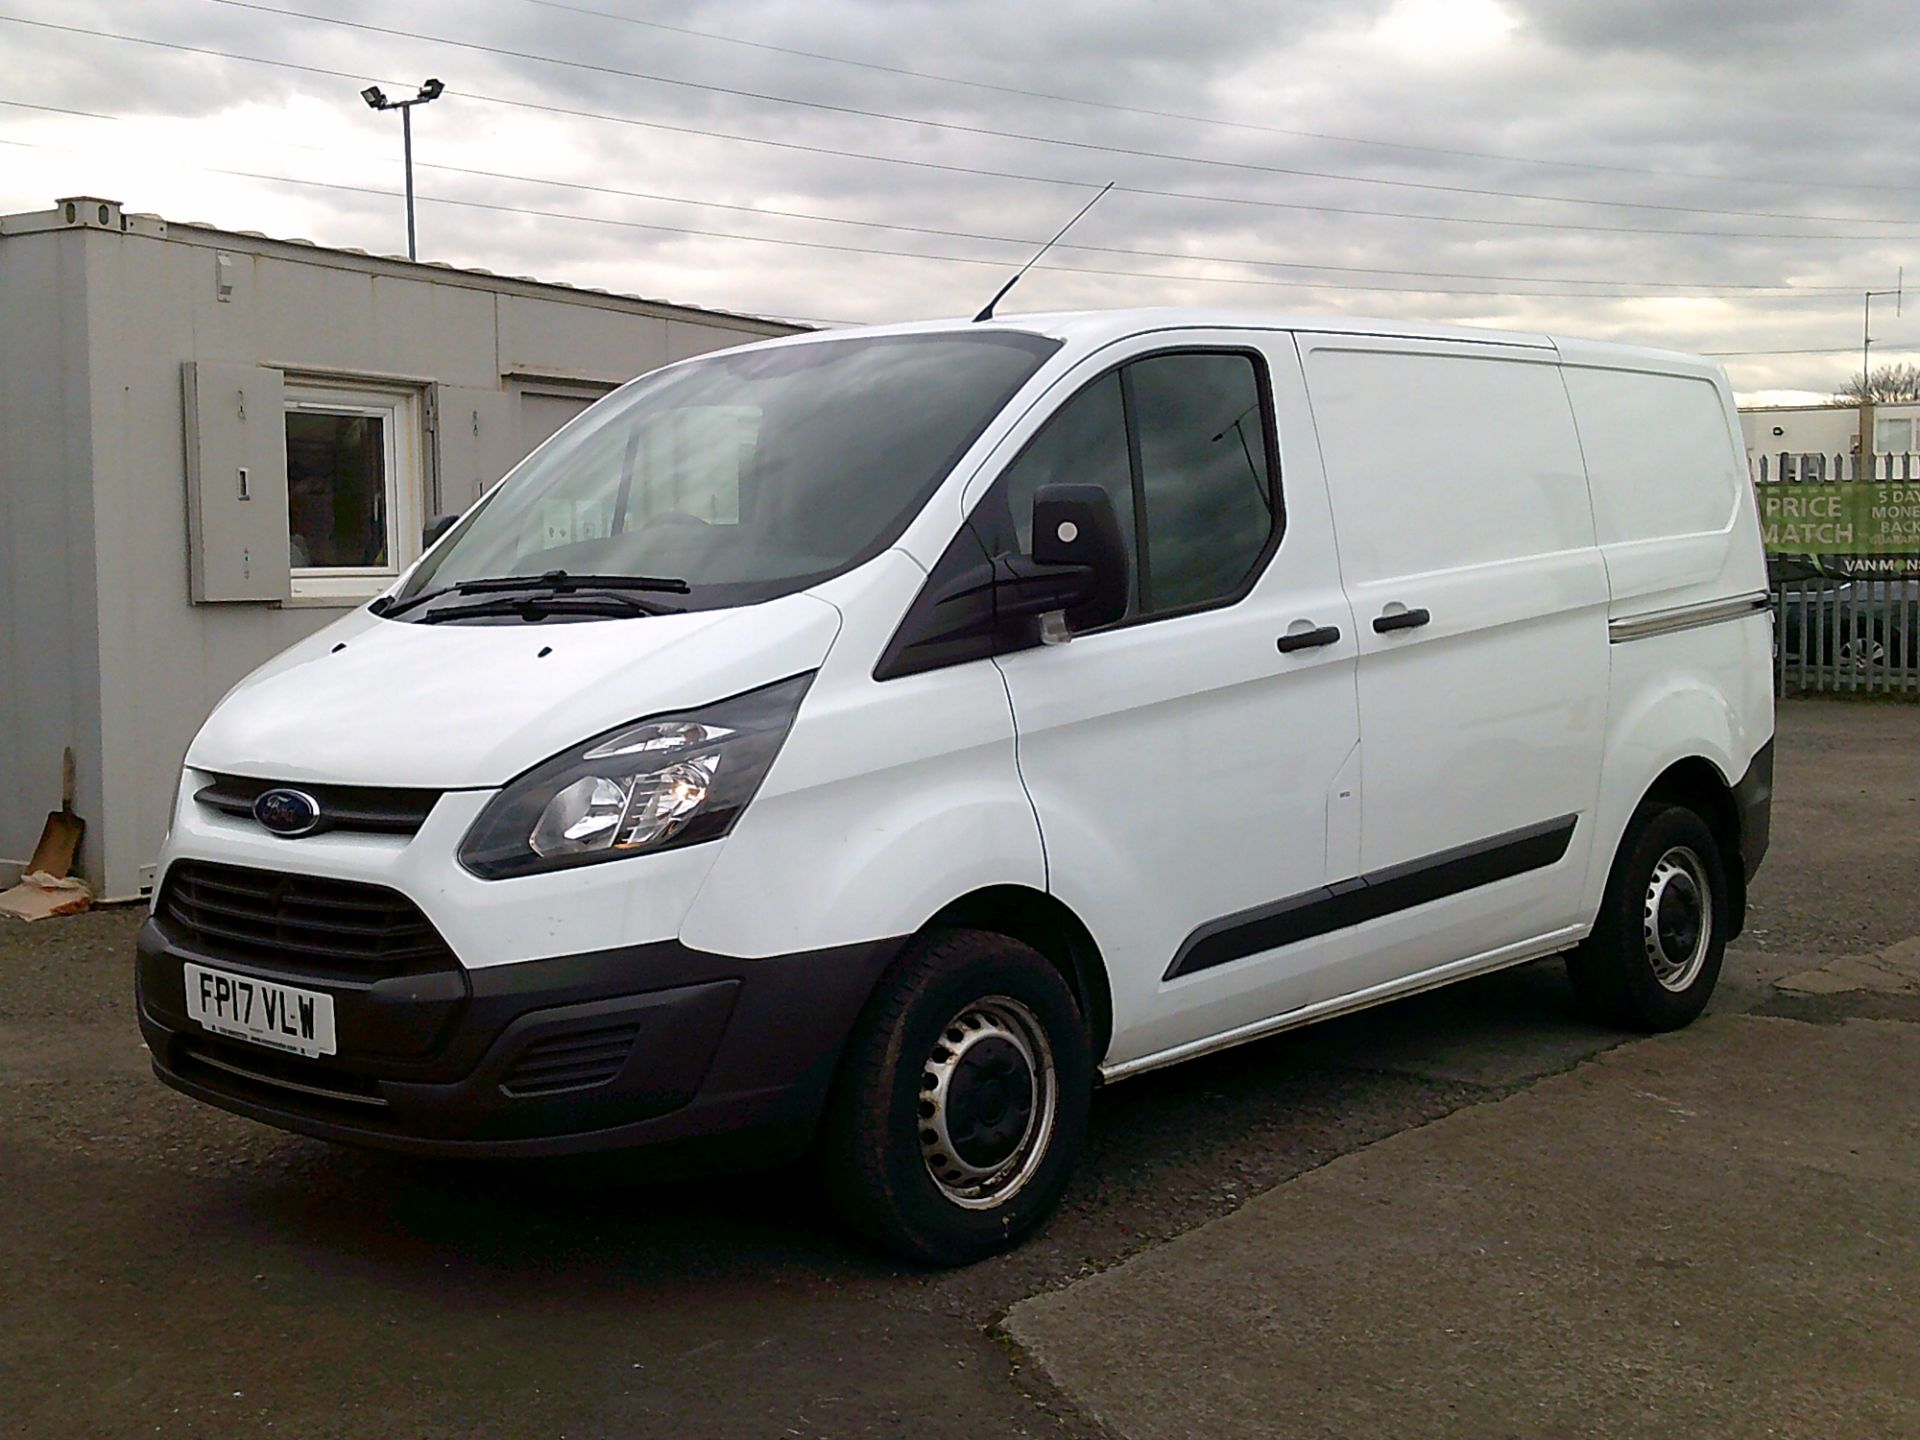 2017 Ford Transit Custom 2.0 Tdci 105Ps Low Roof Van *SPEED RESTRICTED TO 70 MPH* (FP17VLW) Image 3